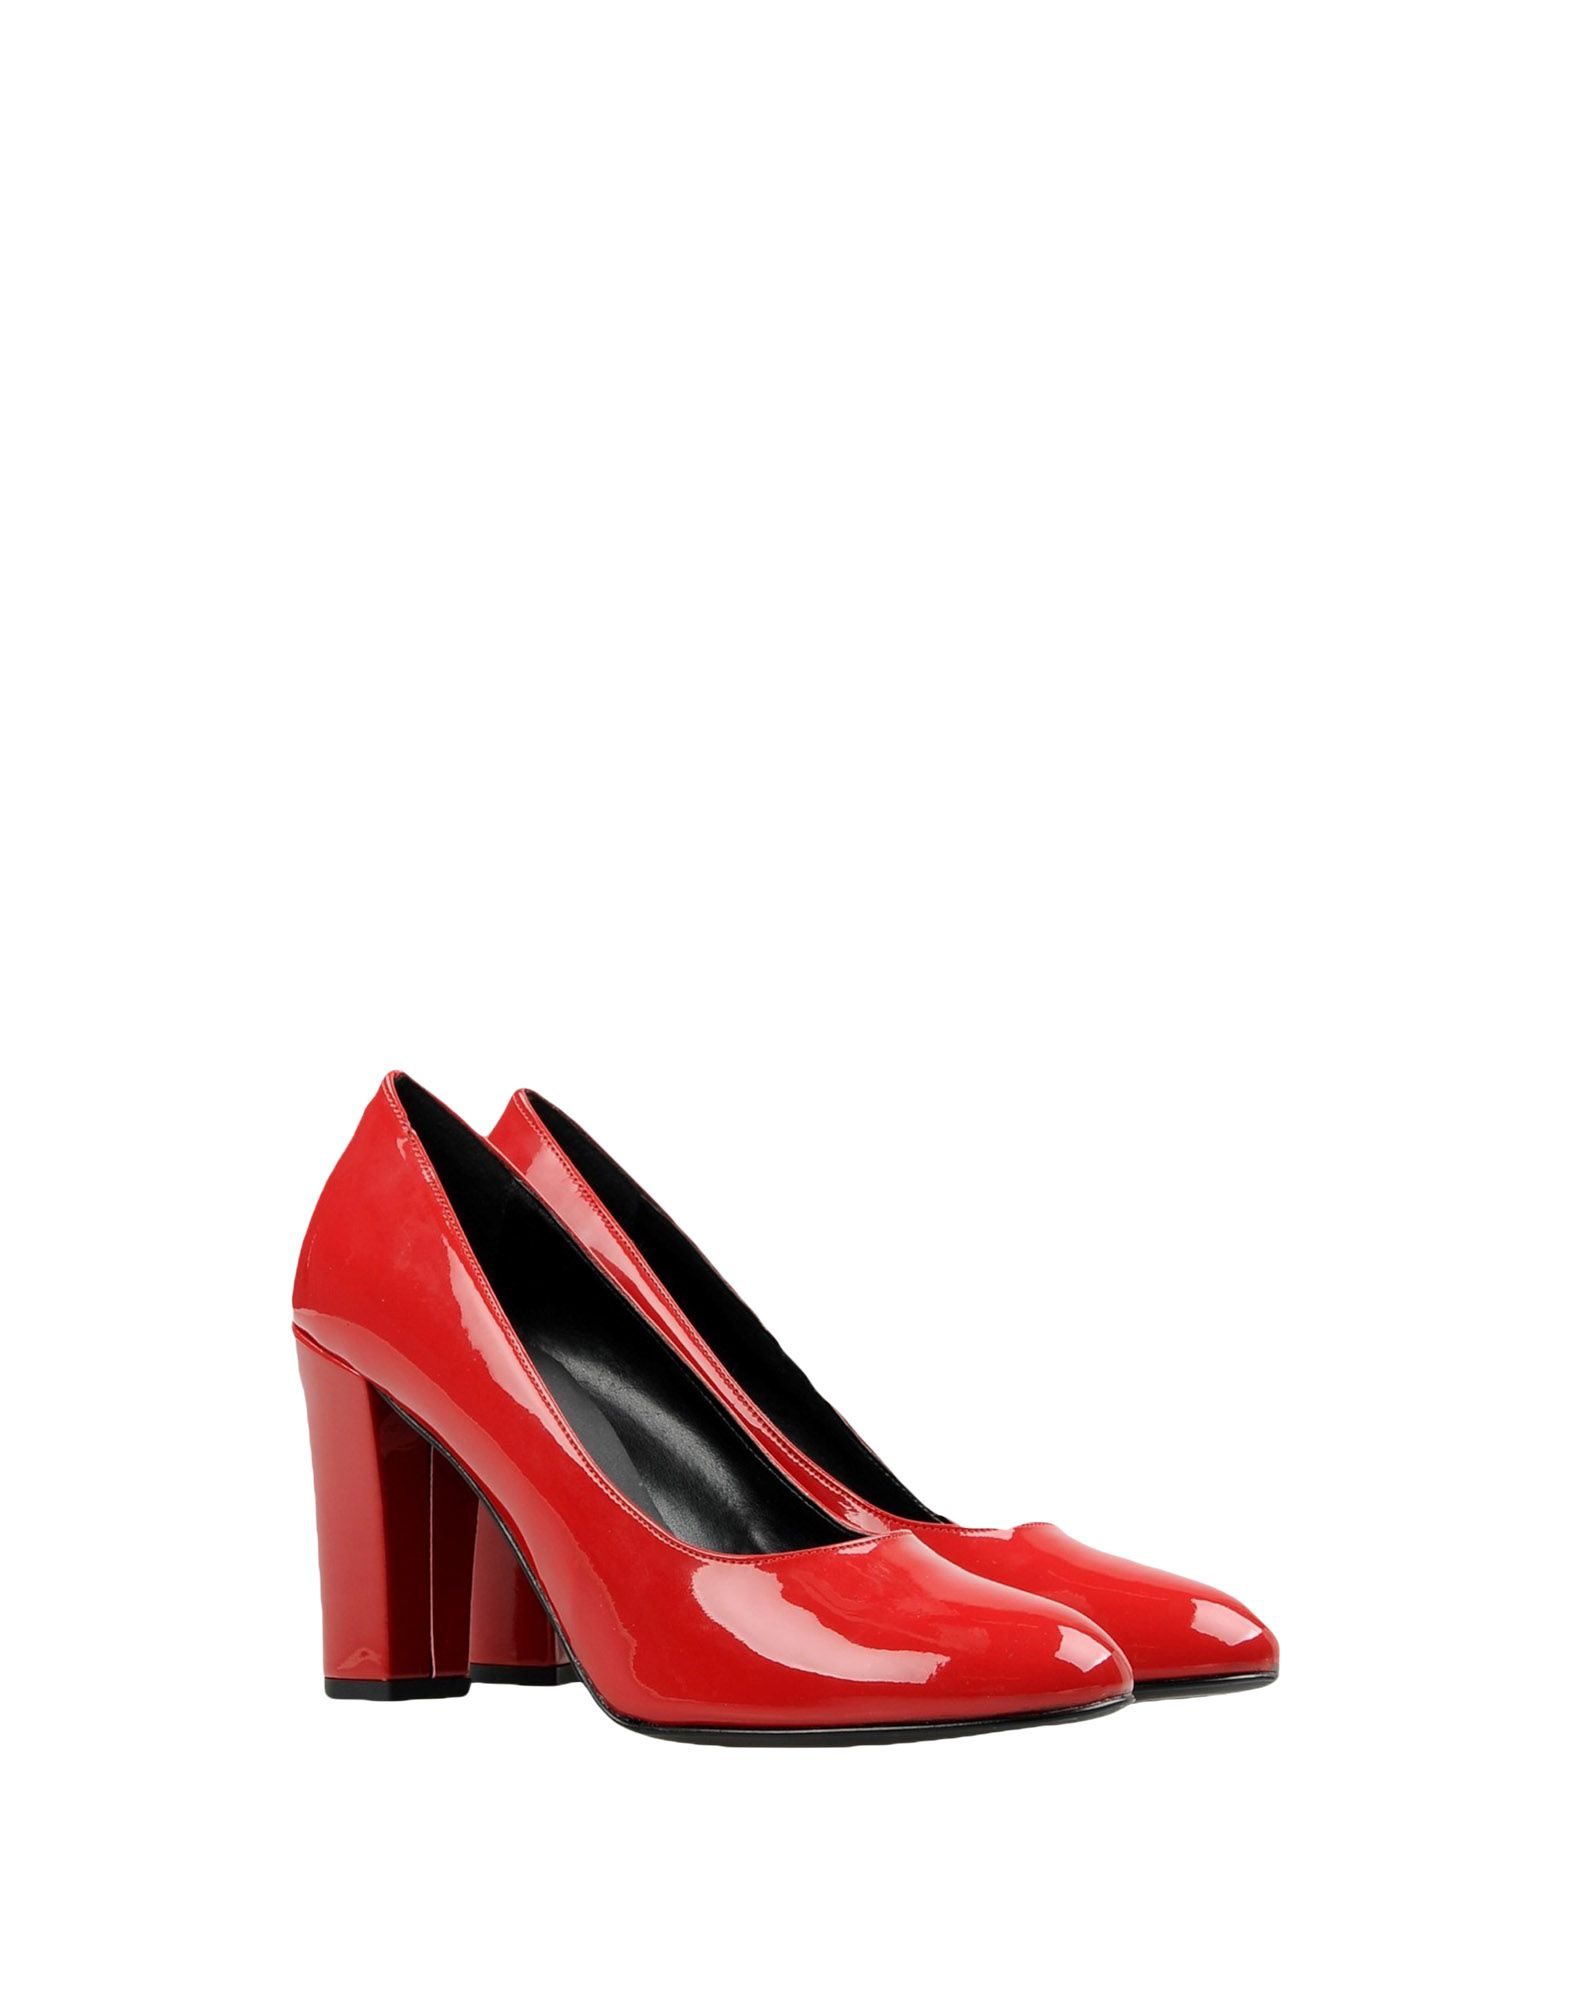 Pierre Darré Damen Pumps Damen Darré  11316531RC  191c48